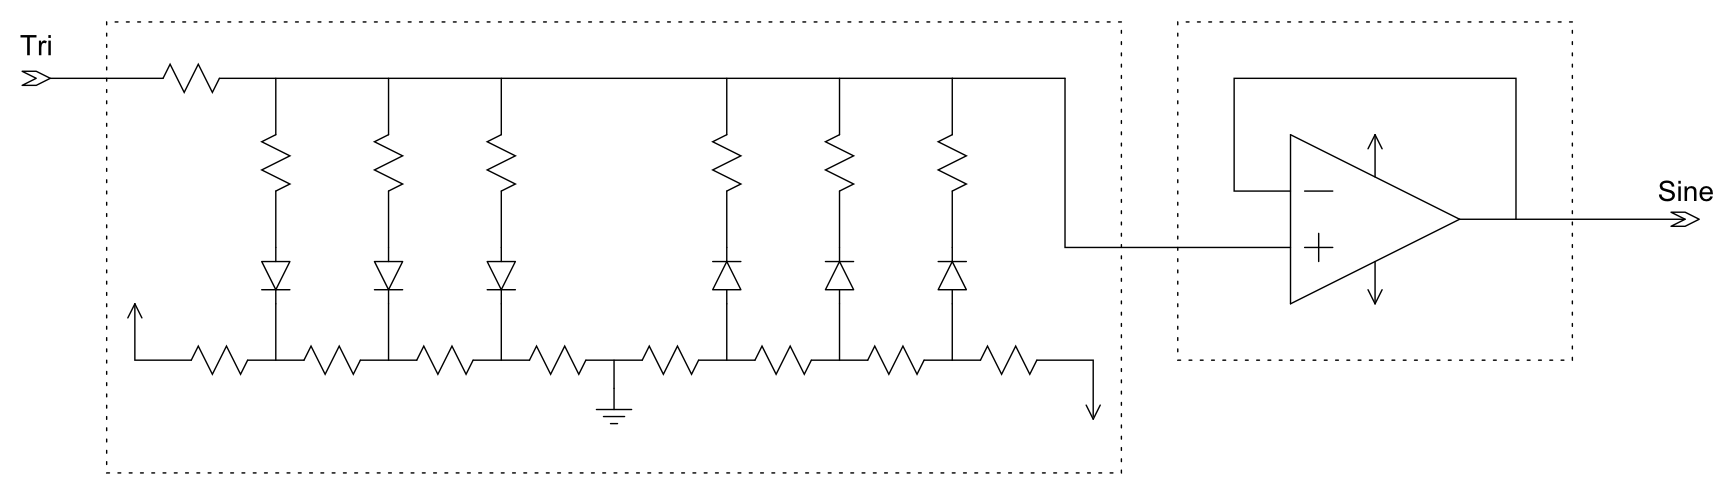 7wave Oscillator Variable Sine Wave Circuit Diy Heres A Useful Graph